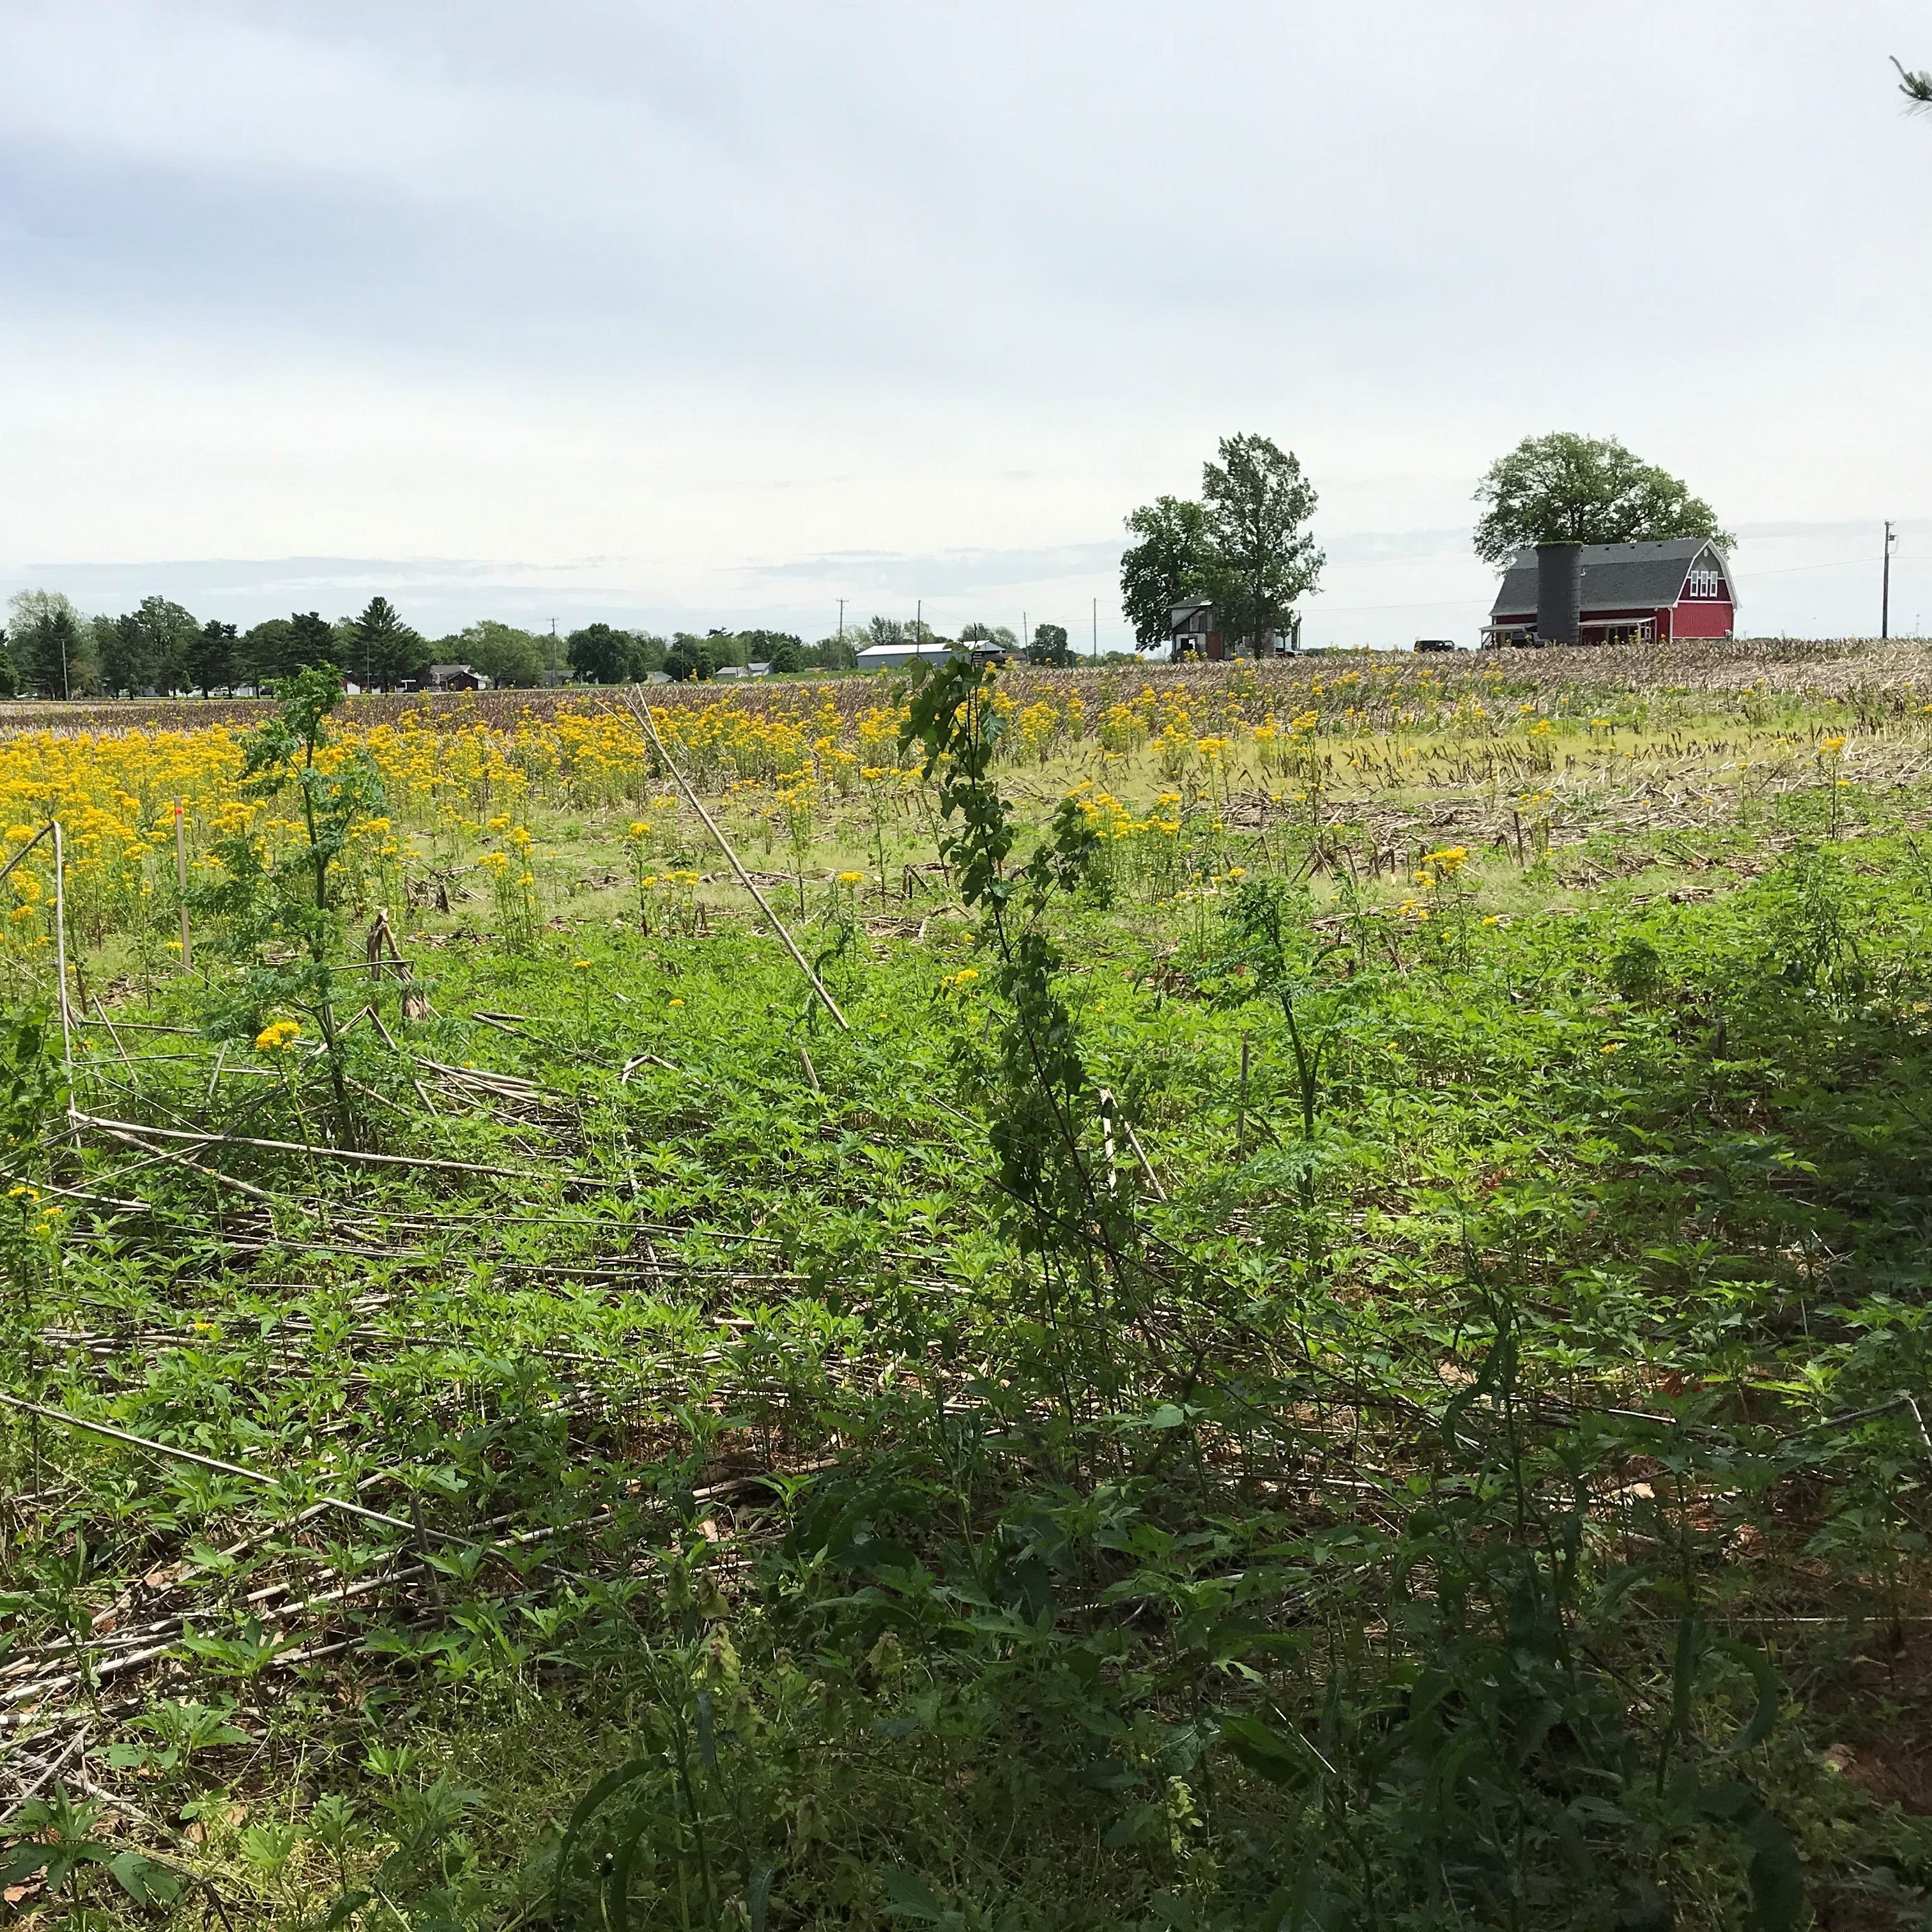 Op-ed: Those wet fields are yellow and shouldn't be; bless anxious Indiana farmers who wait